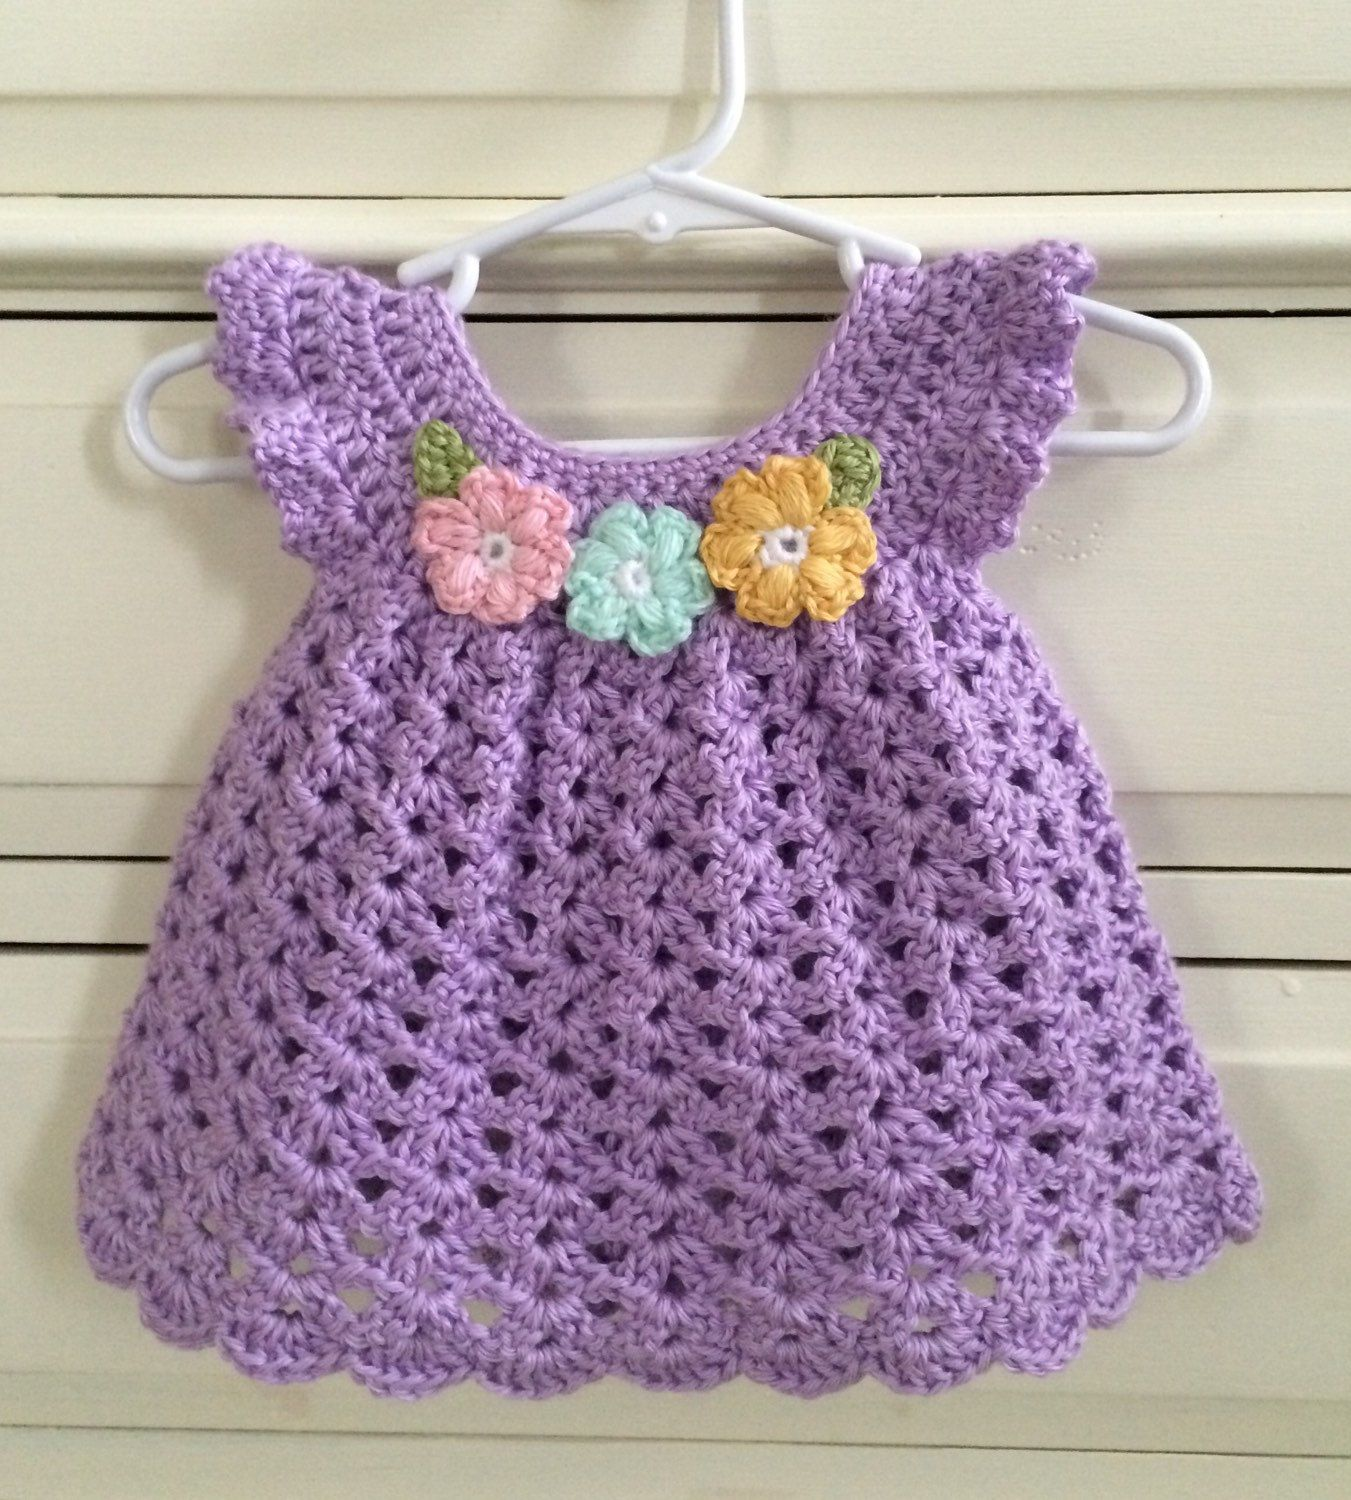 Hand%20Crocheted%20Baby%20Dress.%20Size:%20Newborn%20-%203%20months ...